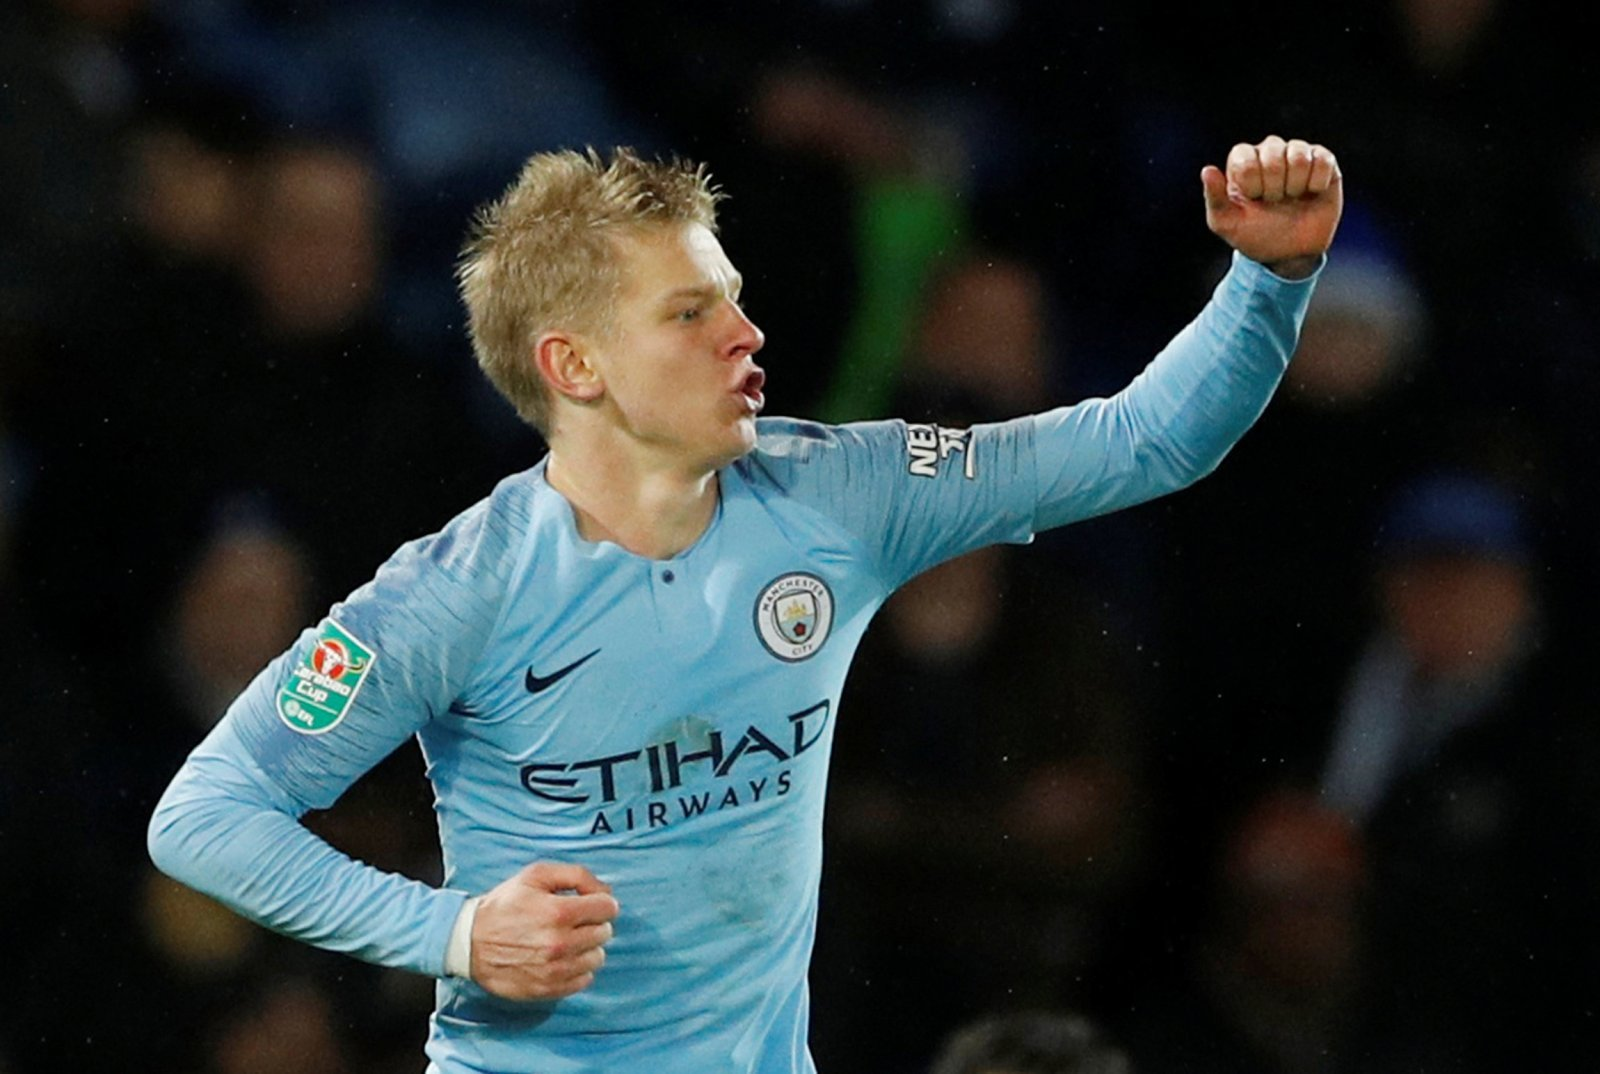 Manchester City: Fans react to Oleksandr Zinchenko scoring for Ukraine